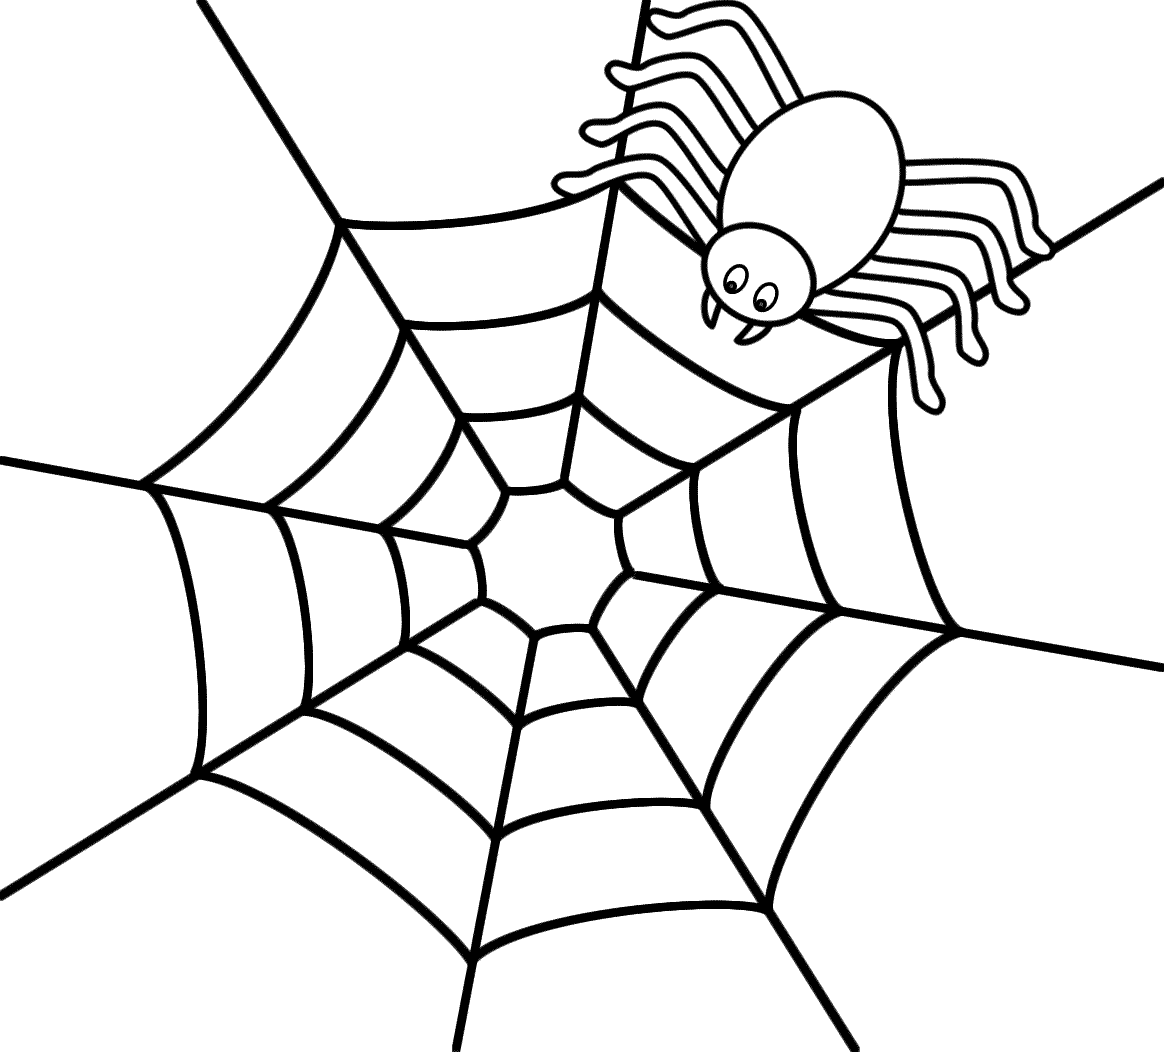 free spider web coloring pages - photo#20